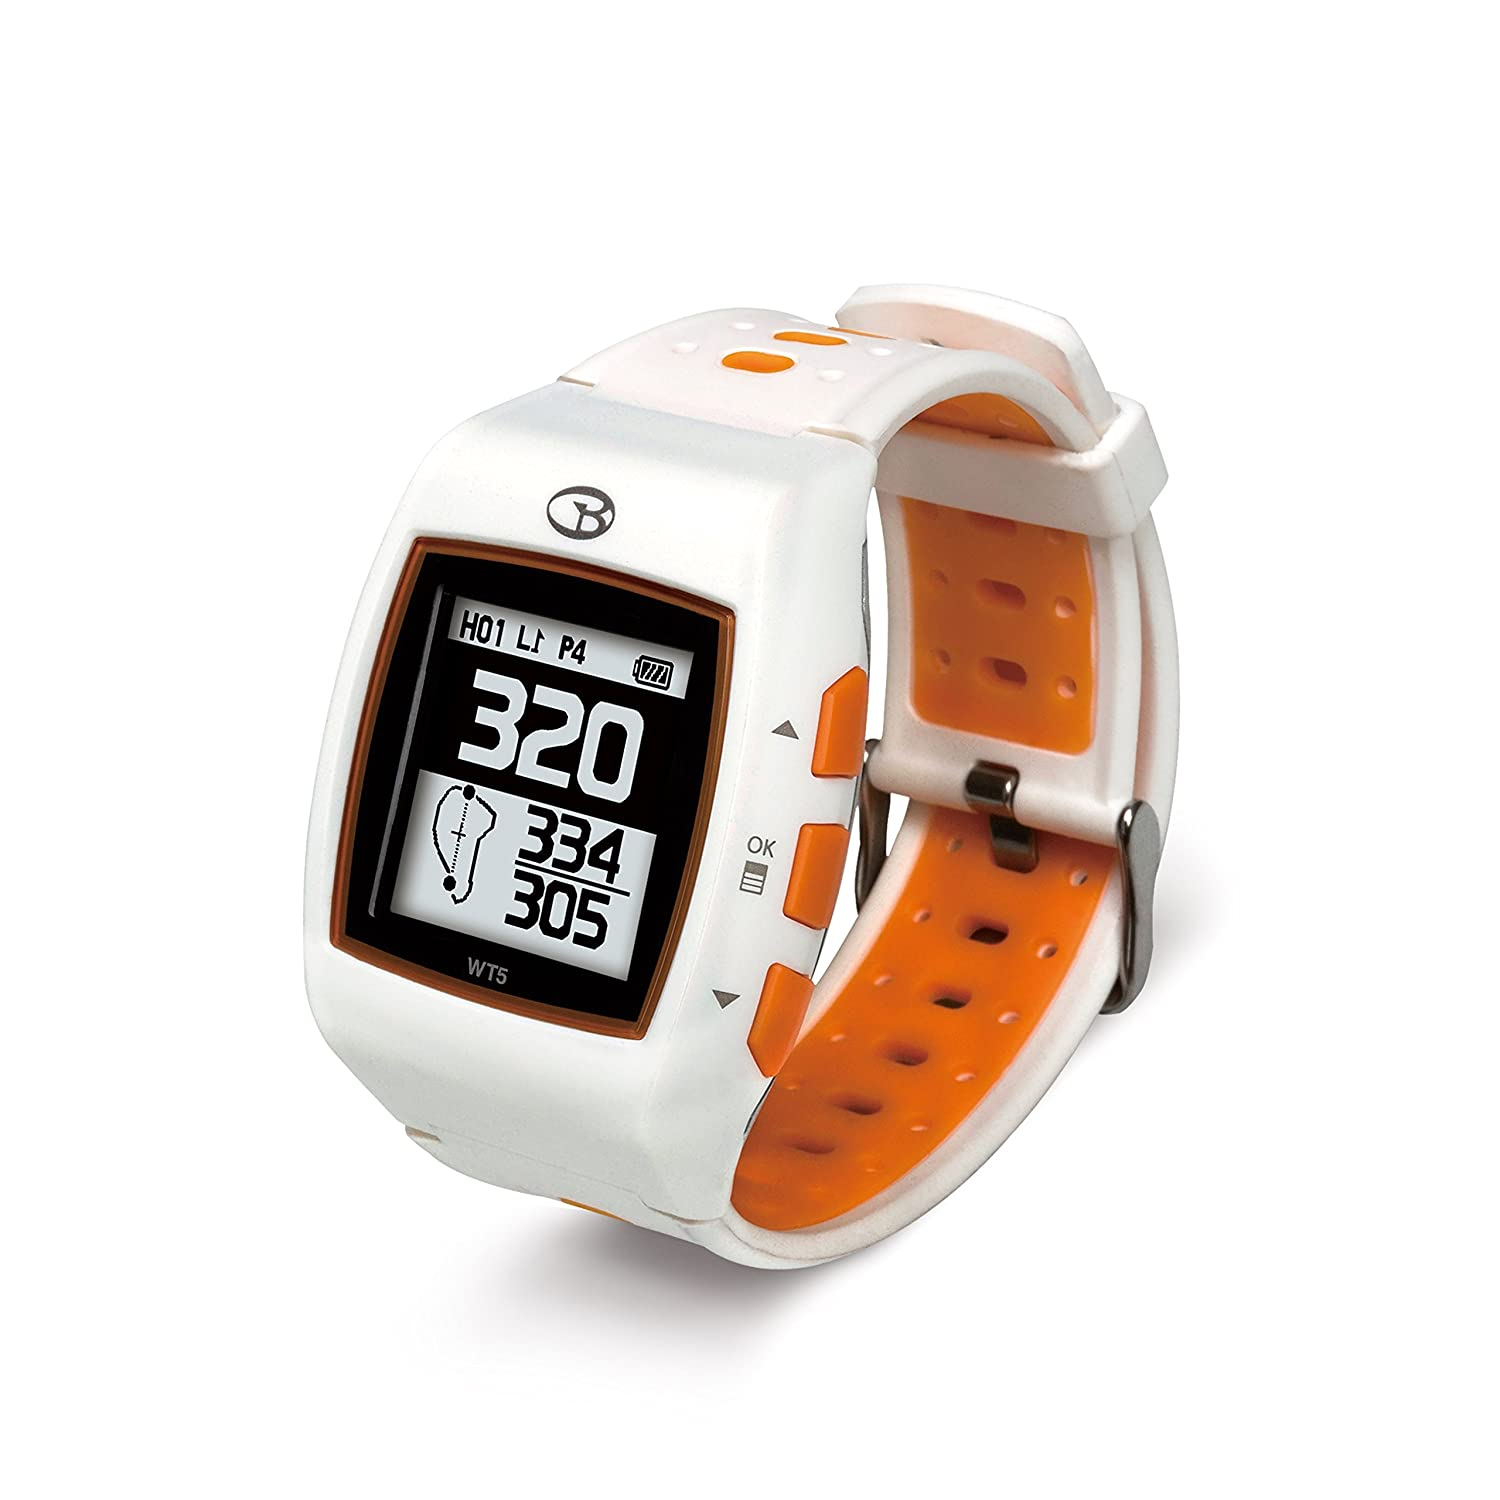 new golf buddy wt5 rechargable golf distance gps watch. Black Bedroom Furniture Sets. Home Design Ideas